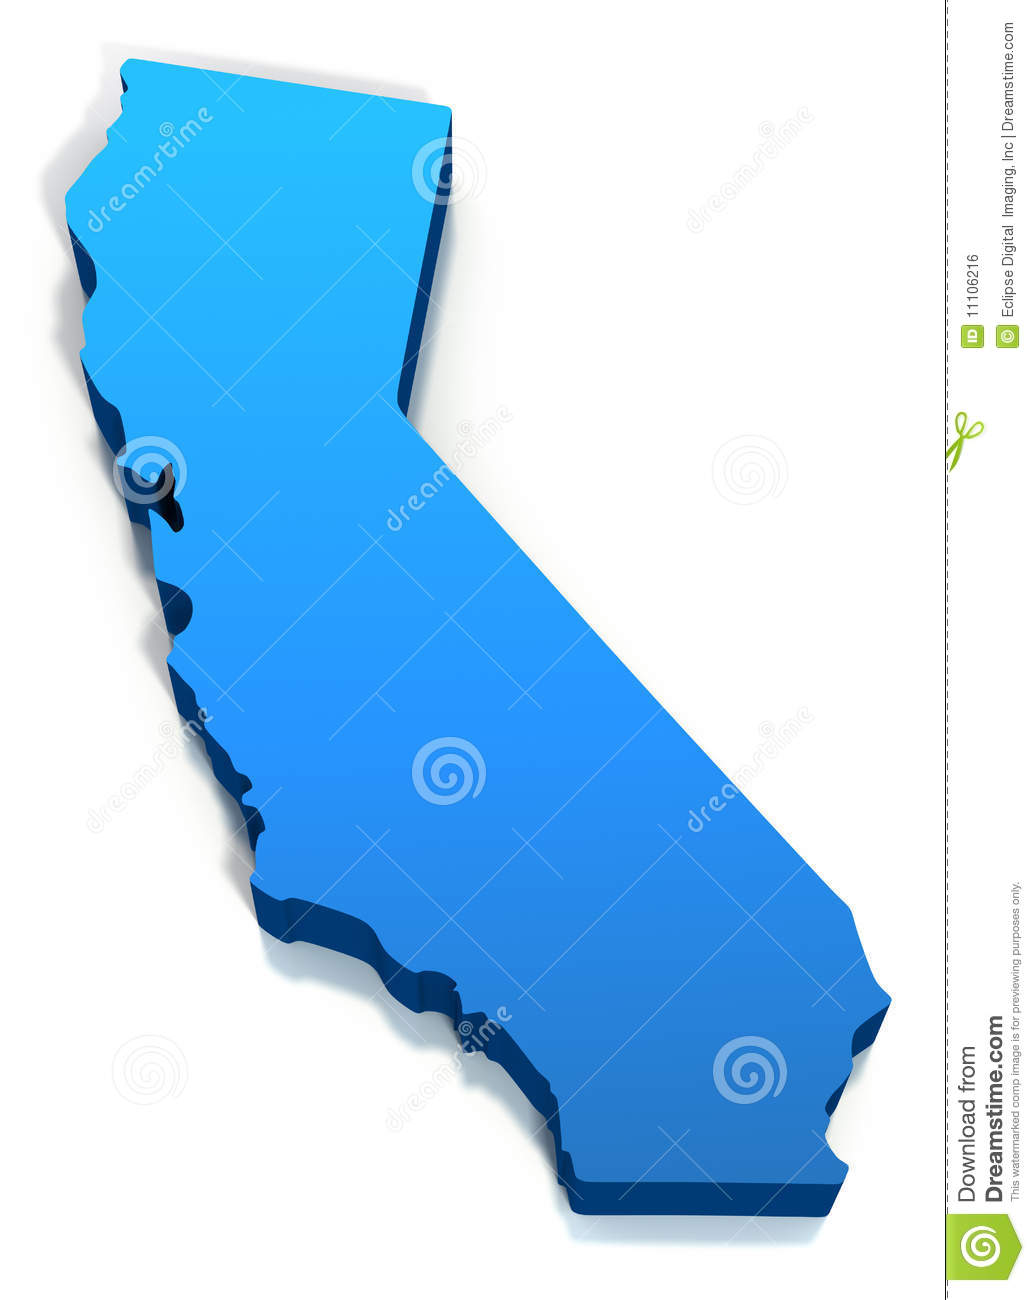 United states california map outline stock illustration united states california map outline publicscrutiny Choice Image